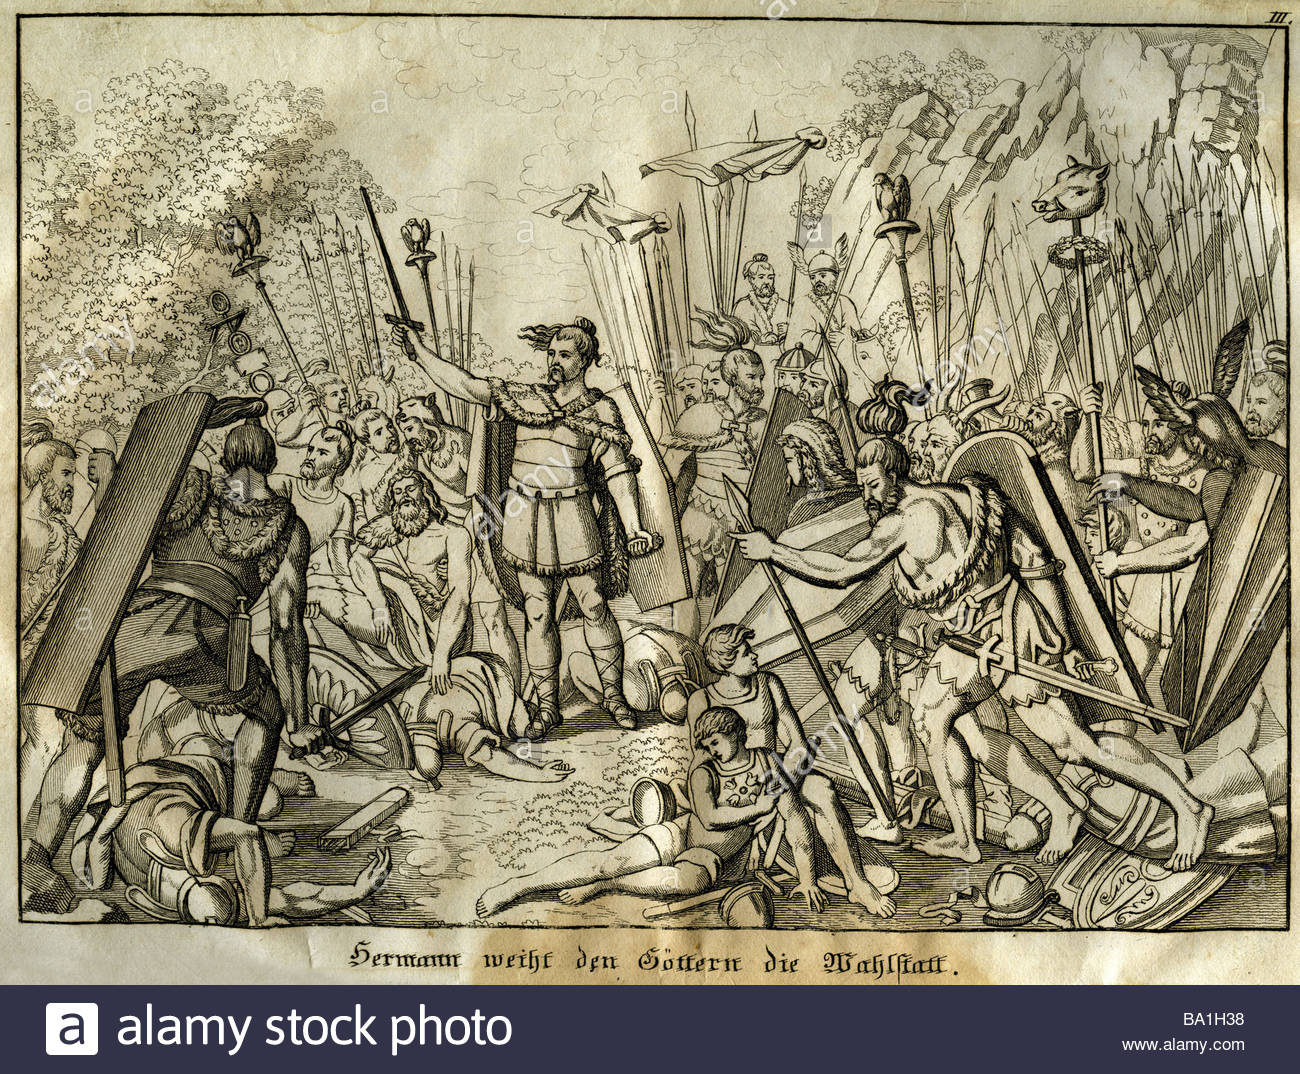 Events, Germanic Wars, Battle Of The Teutoburg Forest, 9 Ad.